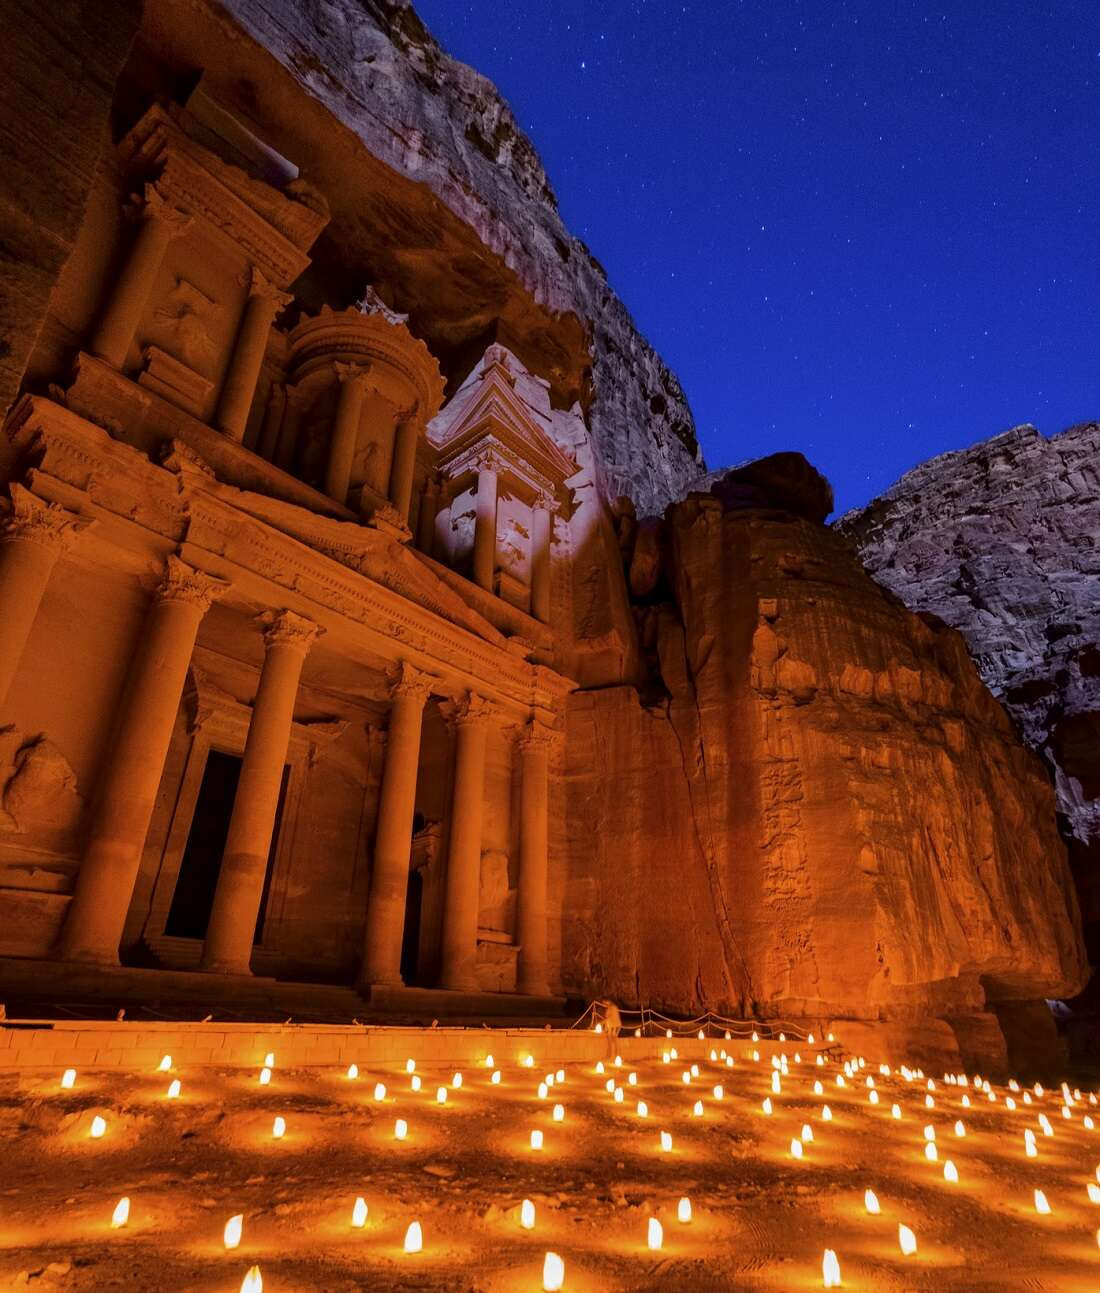 A Look at UNESCO World Heritage Sites - The Hand of Man